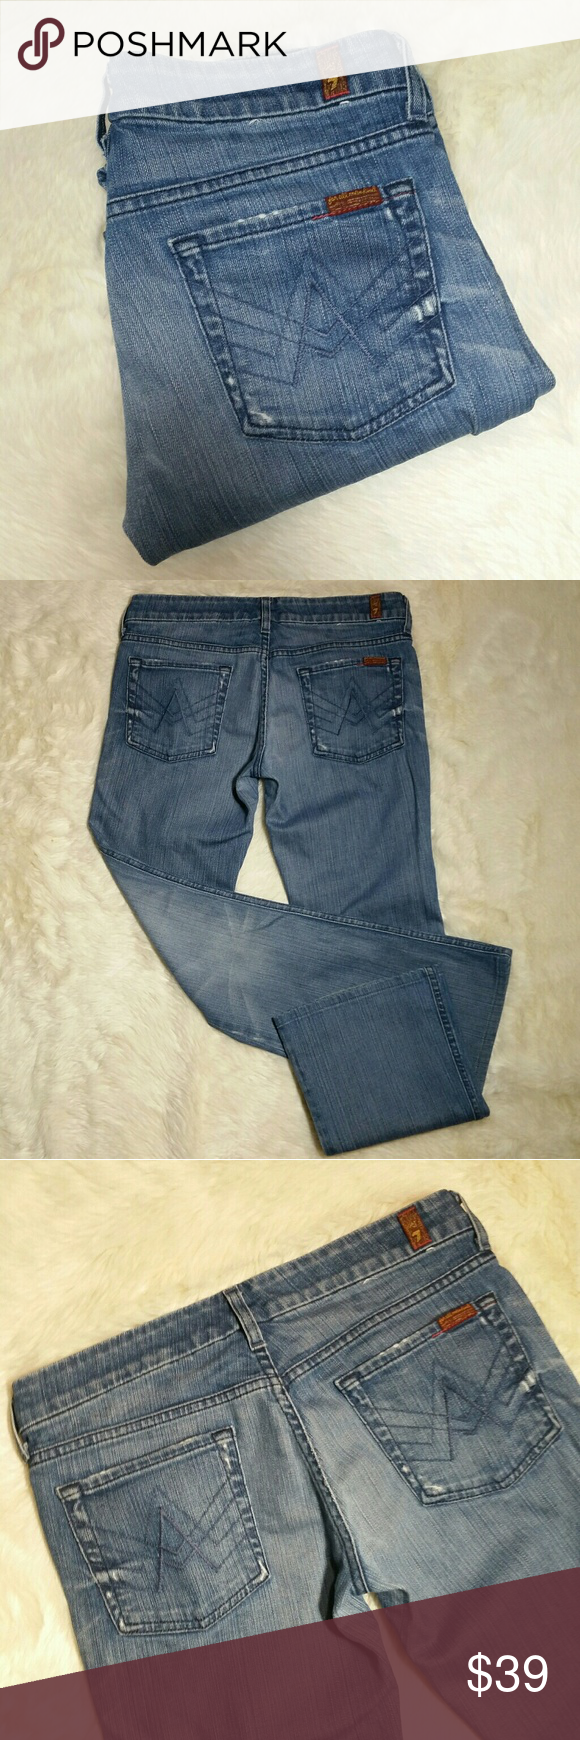 """7 For All Mankind A Pocket Blue Jeans Size 29 7 for all mankind A Pocket Blue jeans, size 29. Lexie """"petite"""" factory inseam of 30.5"""" Medium blue wash jeans with A Pocket detailing in blue stitching. Button and zip fly. Factory distressed at hips and pockets. Super soft comfy denim made up of 98% cotton and 2% polyurethane. Size 29.  Measurements  Waist 16"""" Rise 7.5"""" Inseam 30.5"""" Leg opening 9"""" 7 For All Mankind Jeans Boot Cut"""